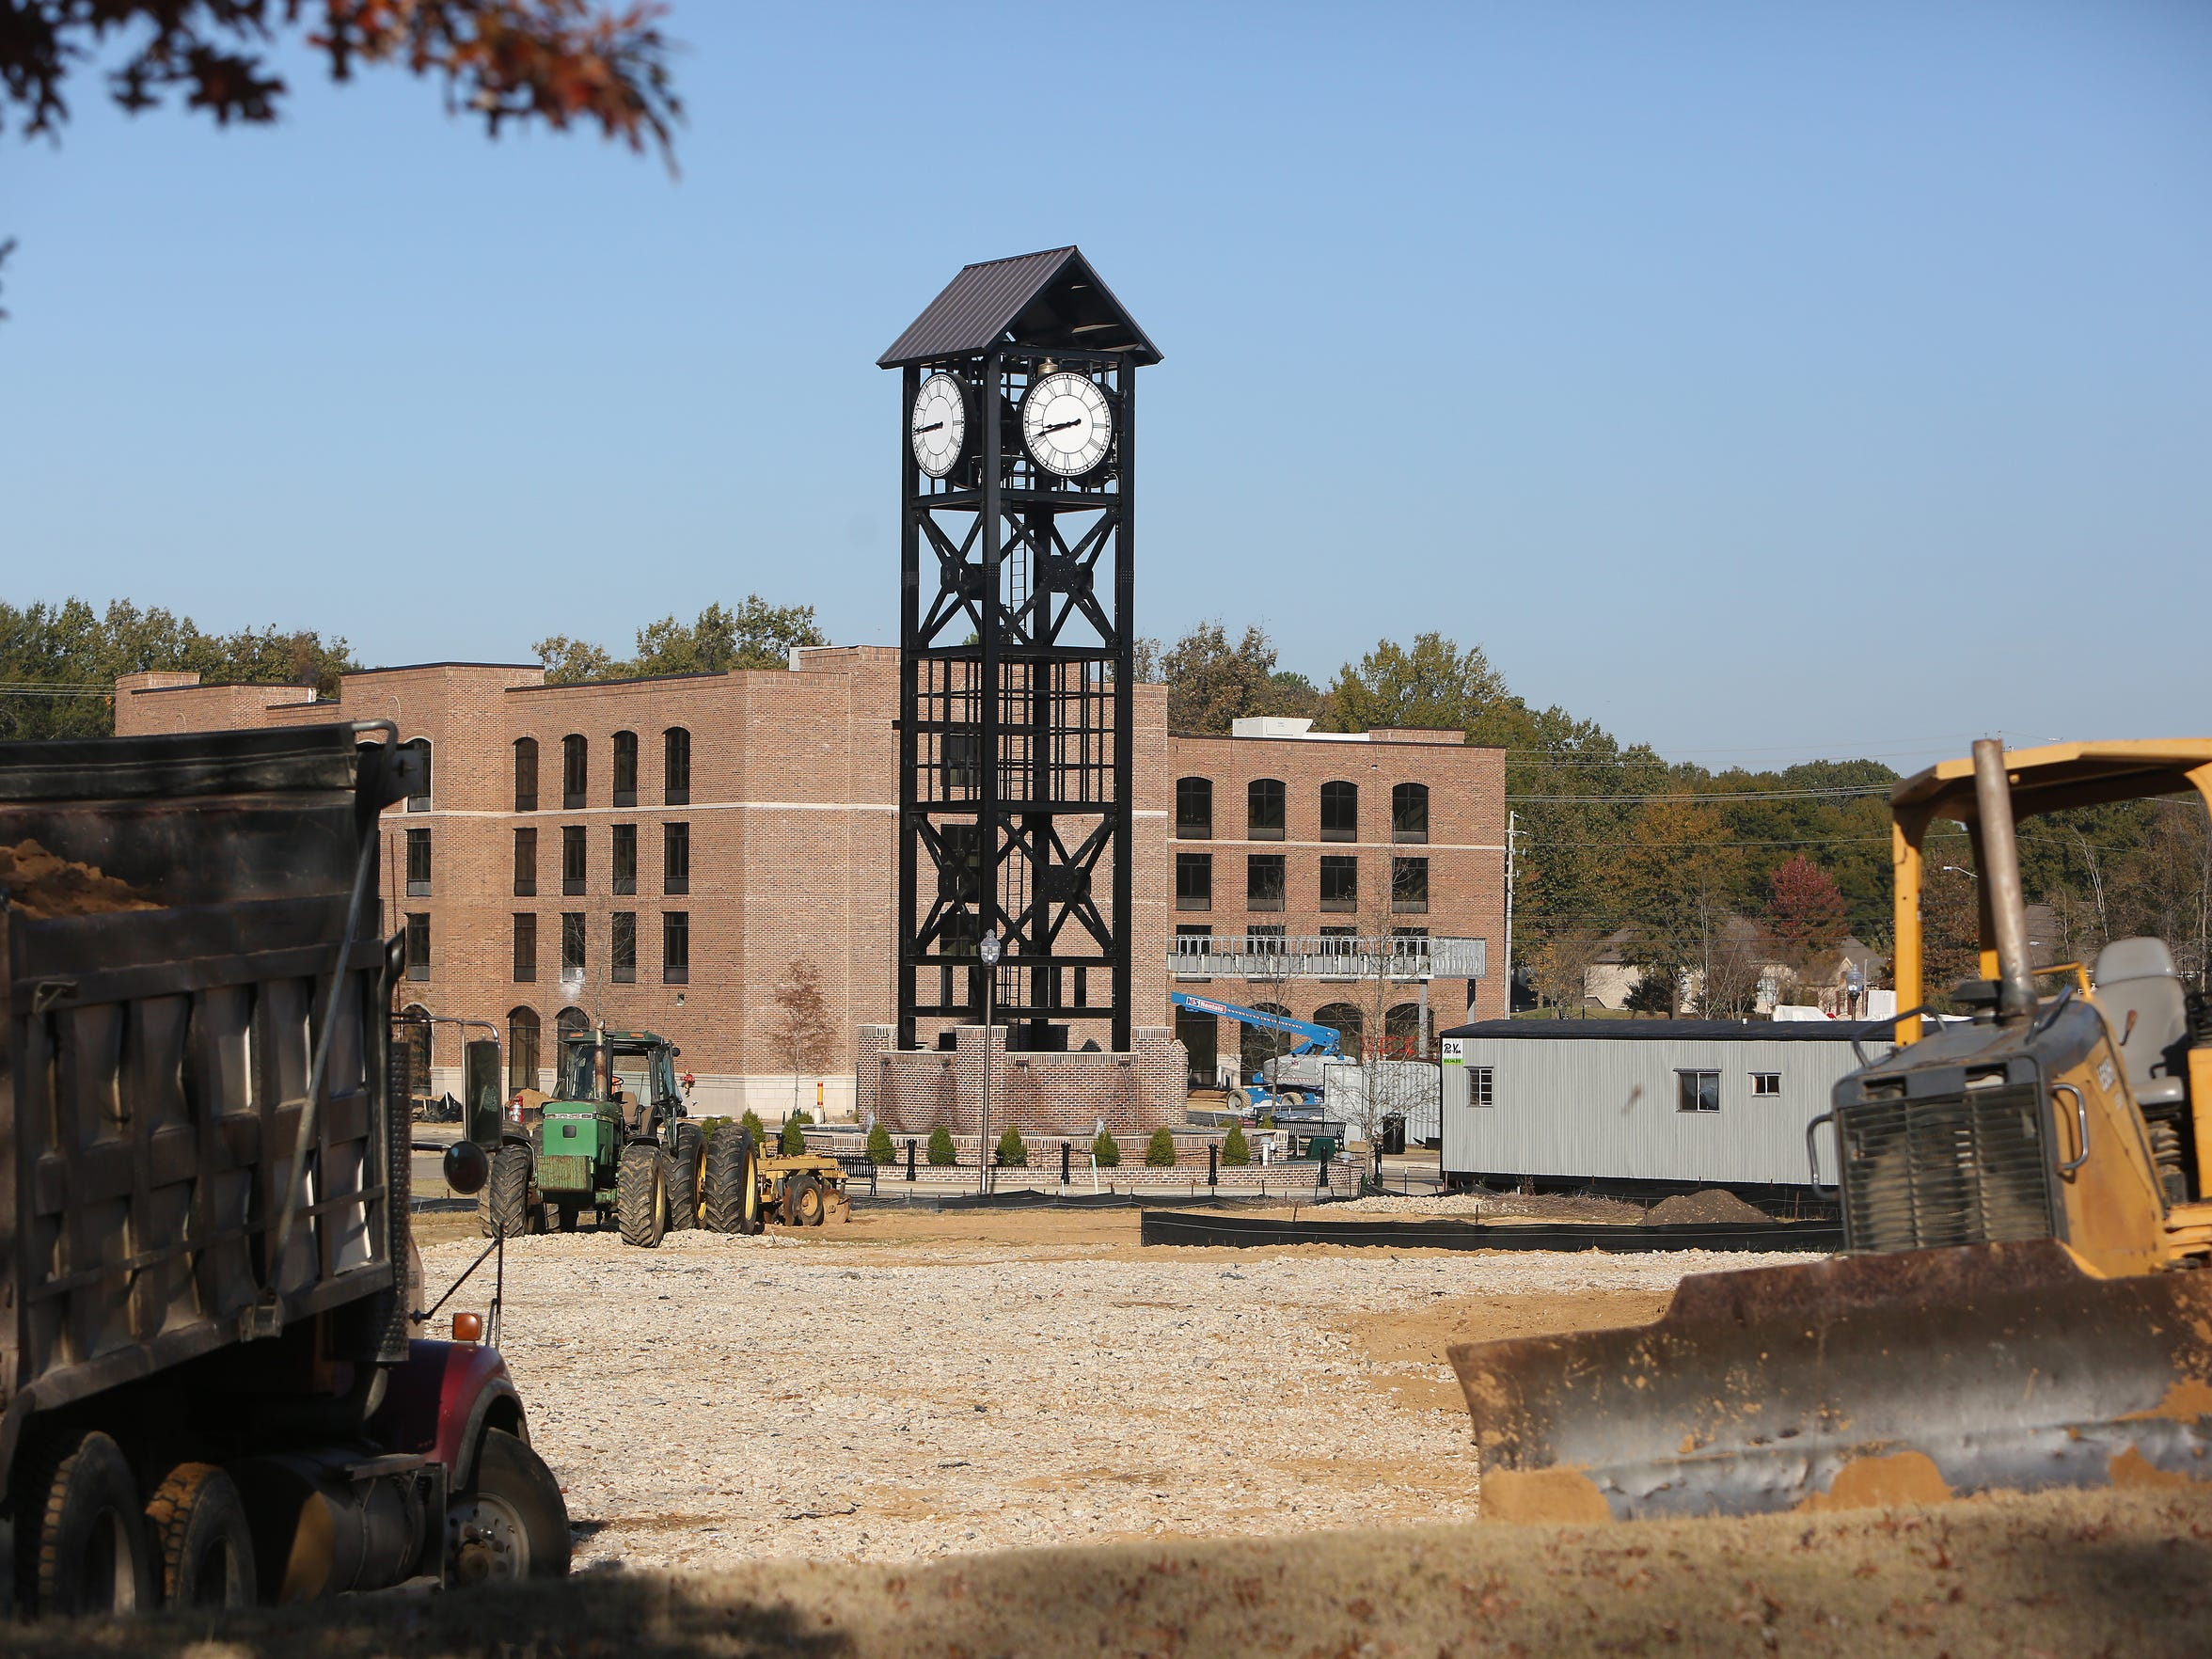 November 15, 2016 - A prominent clock tower stands center stage of the Thronwood construction site located on Germantown Parkway.